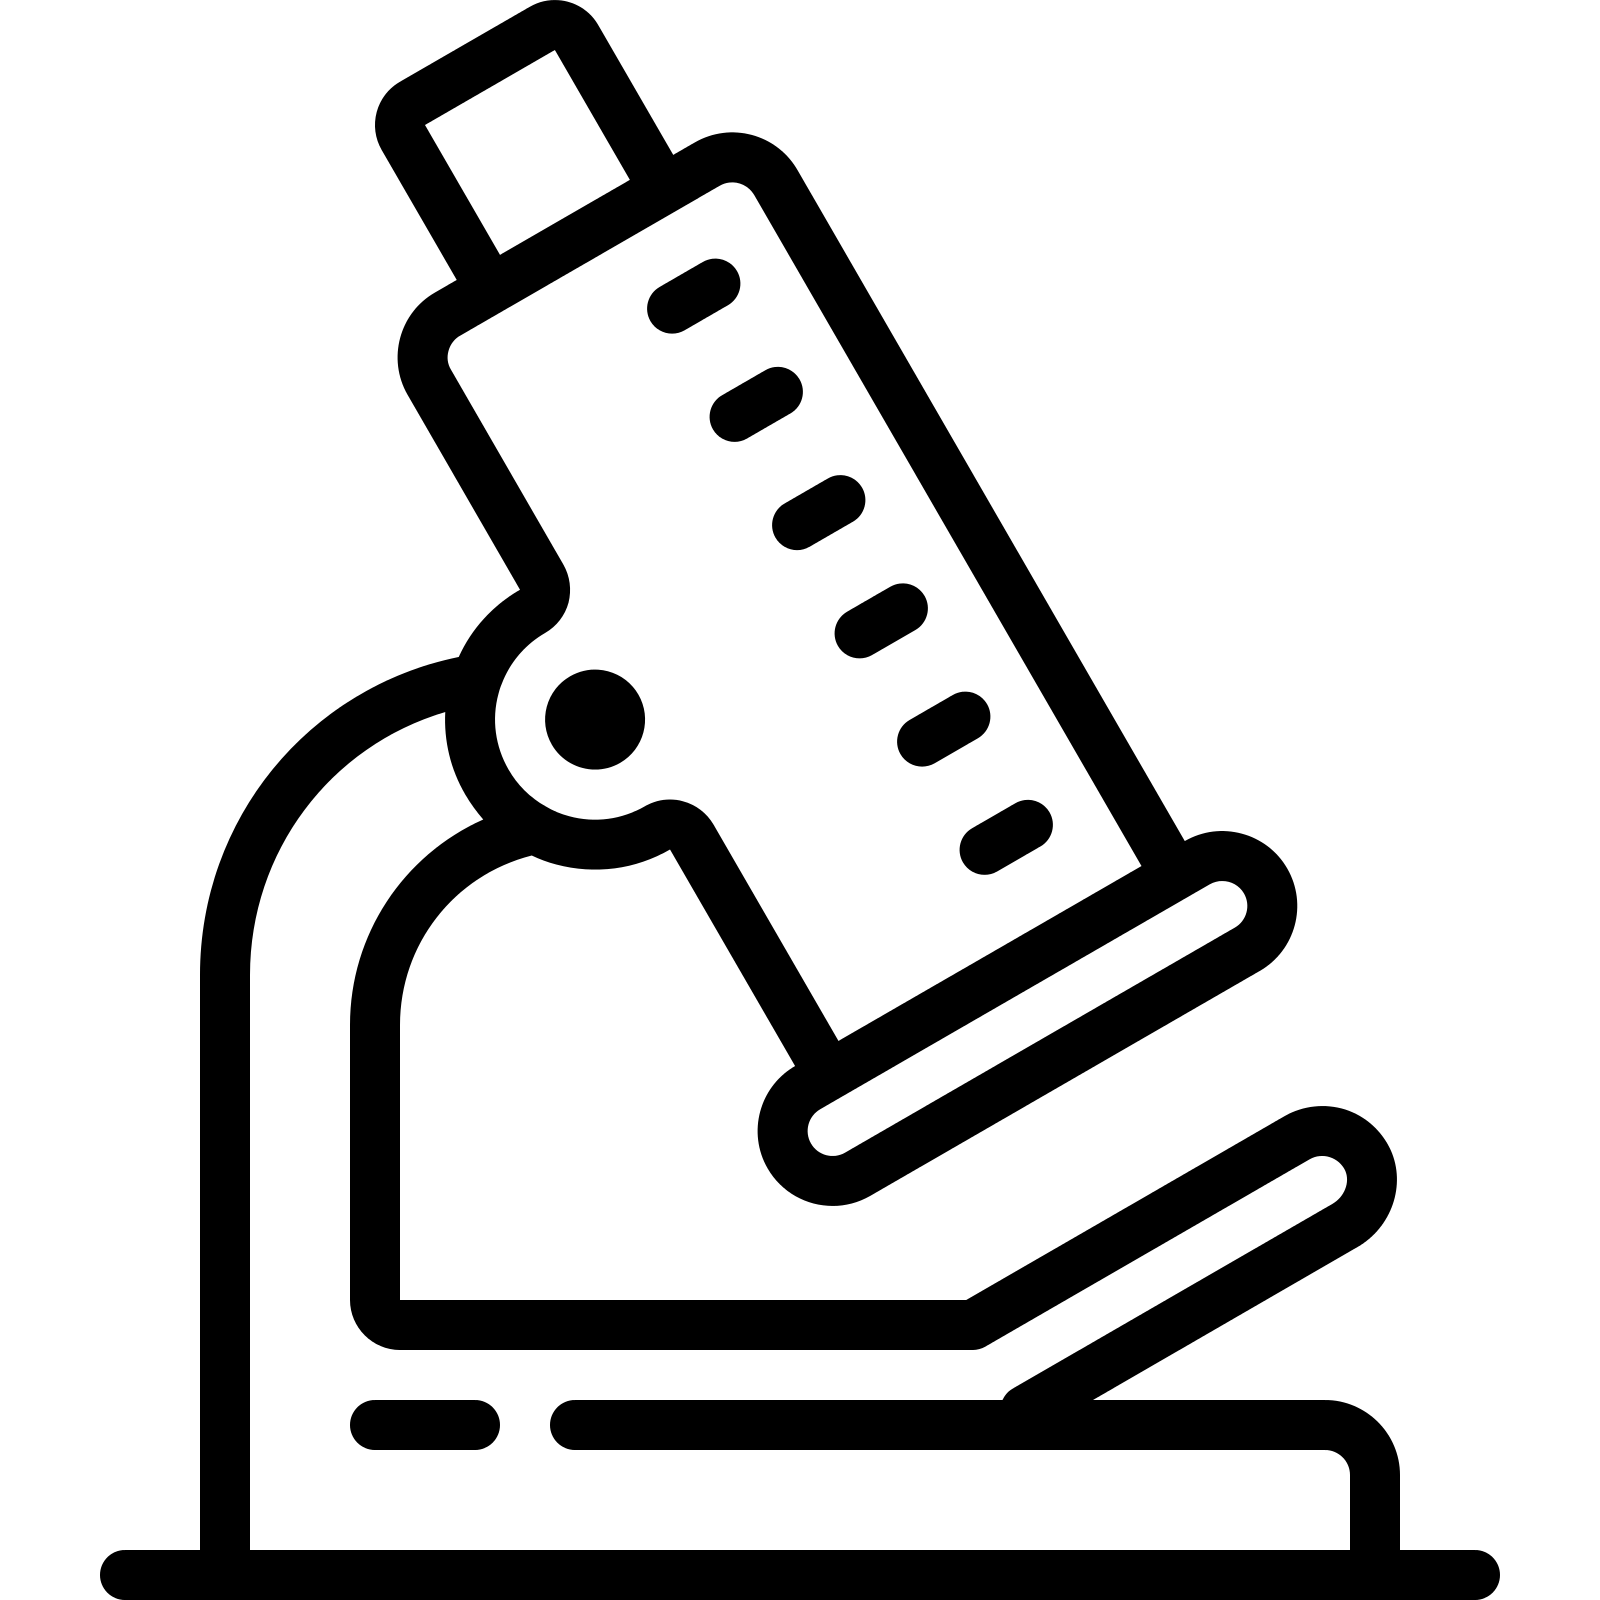 Microscope clipart science object, Microscope science